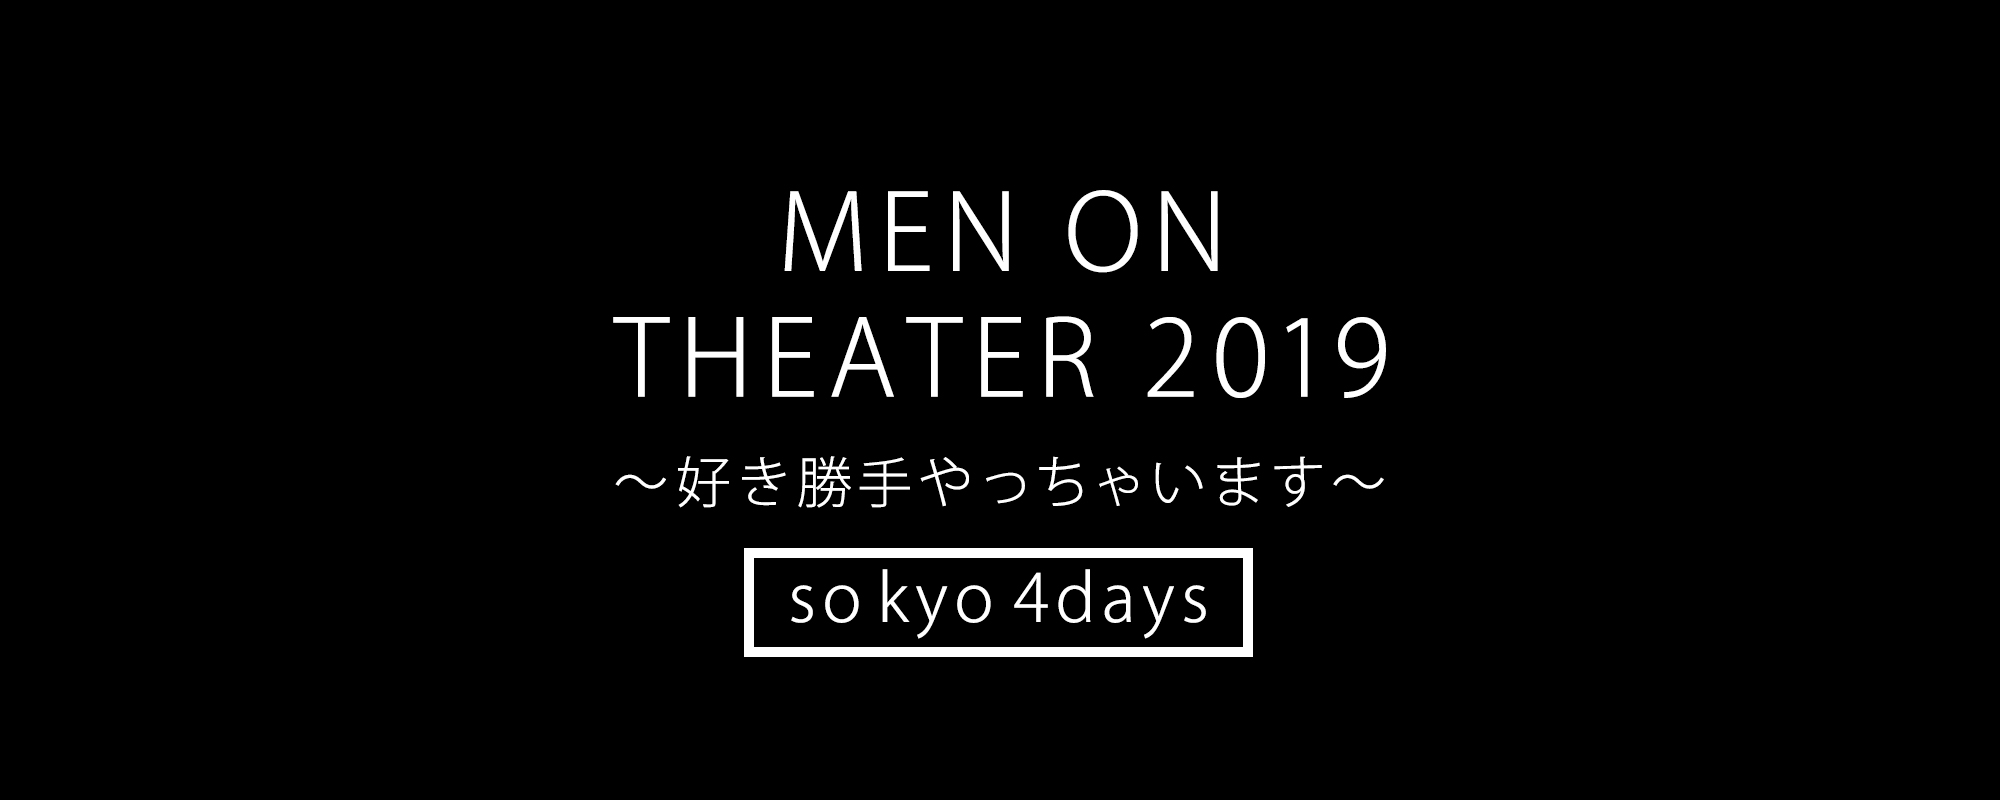 MEN ON THEATER 2019